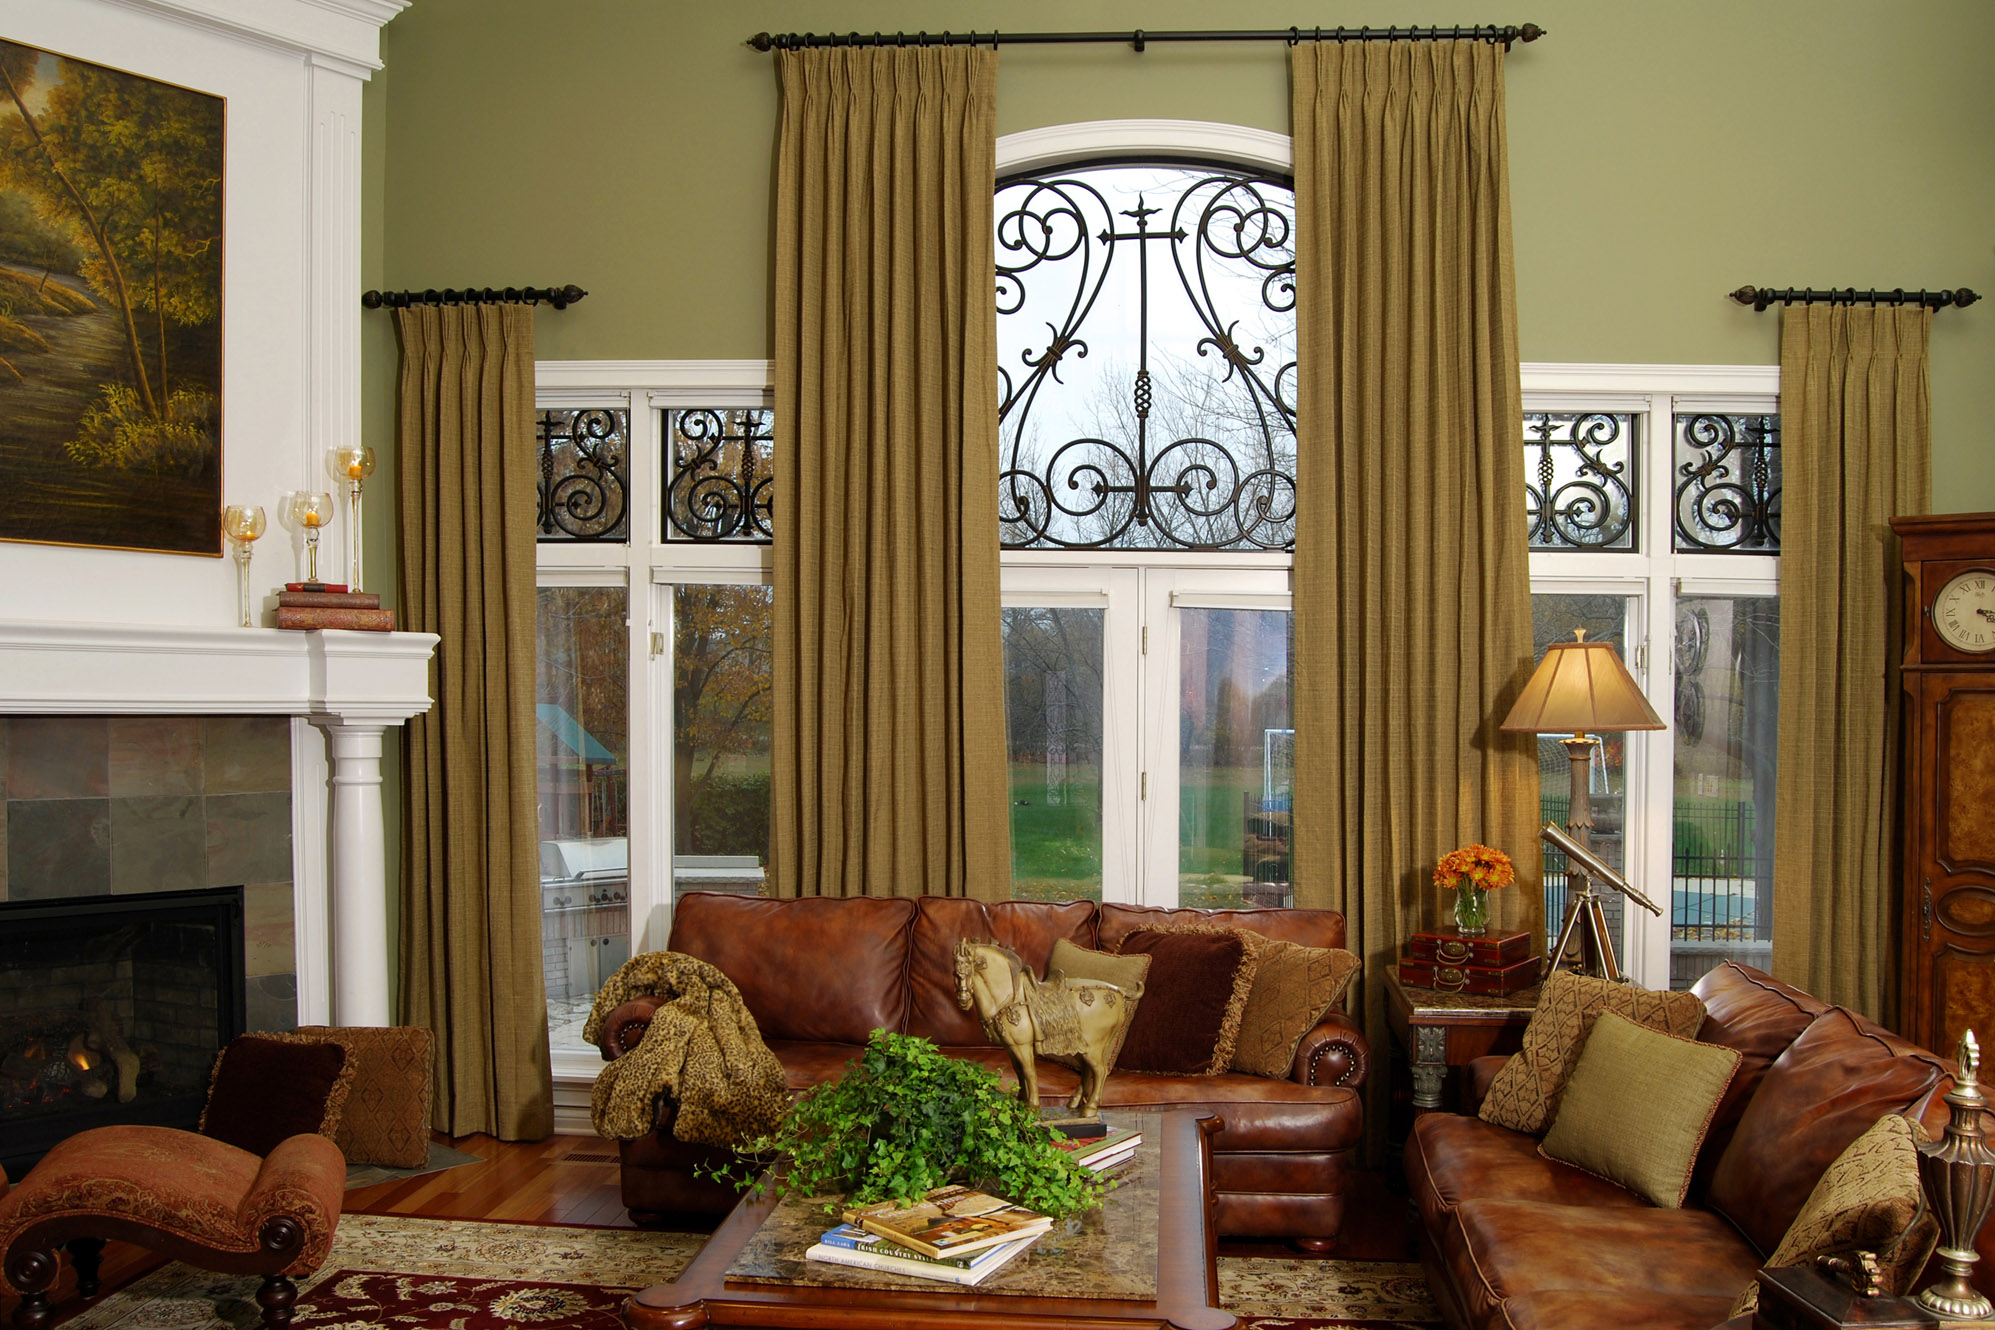 decorative window treatments tall skinny windows shady shades never before have roman shades been as popular they are today these beauty provide privacy in the most decorative of ways the abcs decoratingu2026t is for terrific window treatment tips